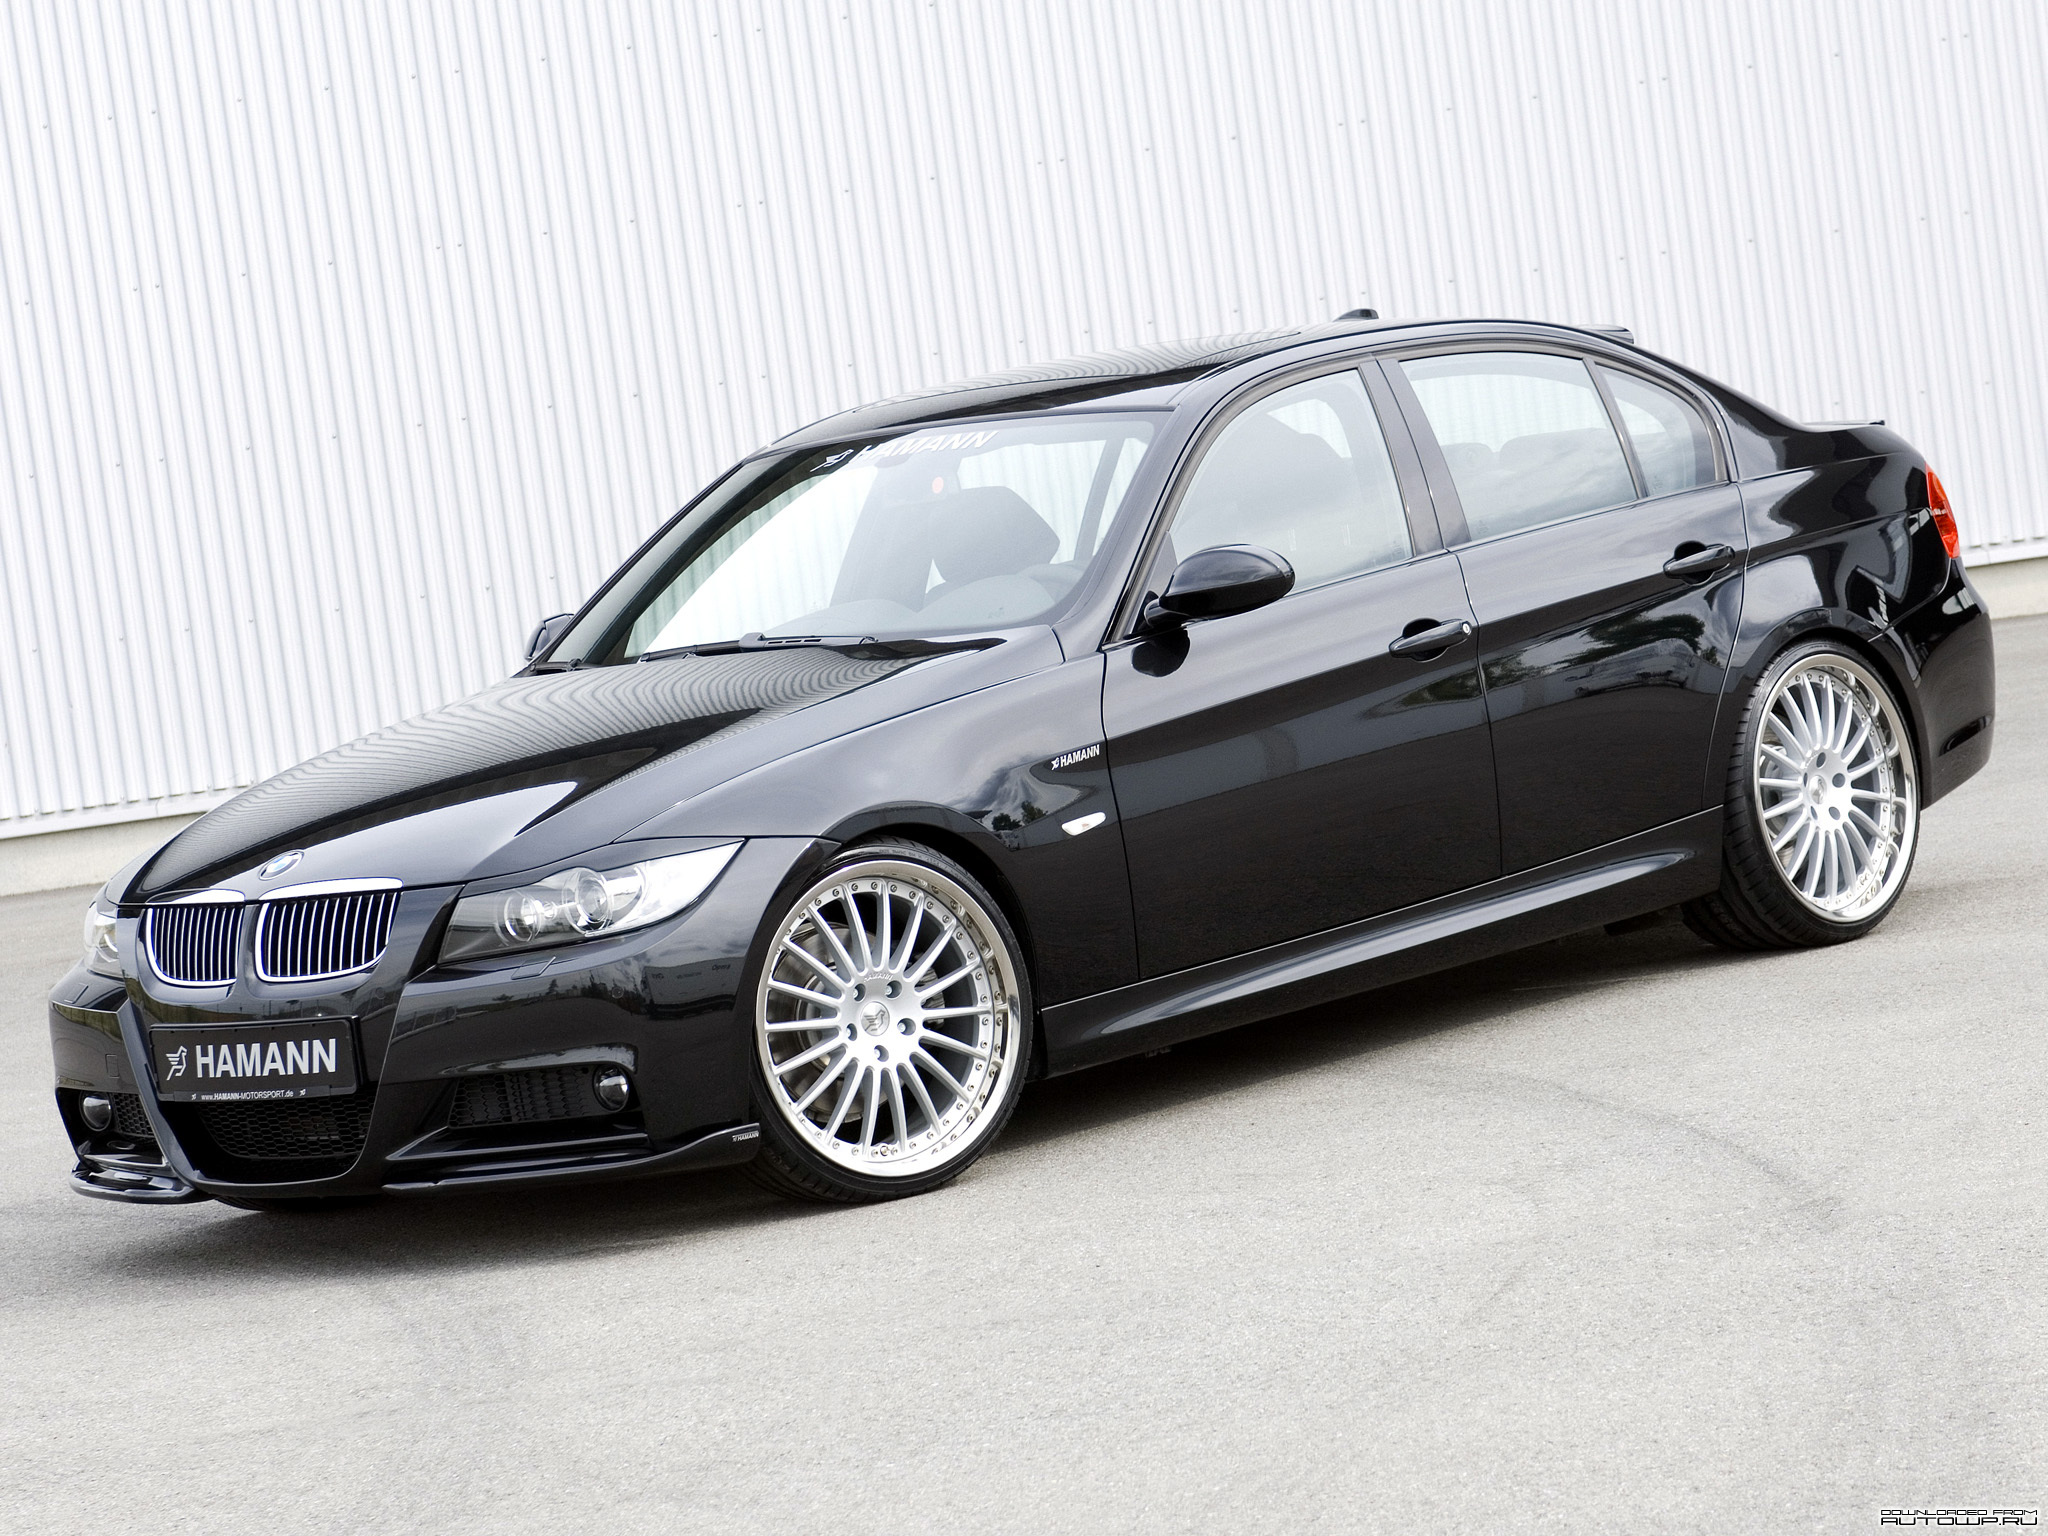 hamann bmw 3 series e90 photos photogallery with 25 pics. Black Bedroom Furniture Sets. Home Design Ideas